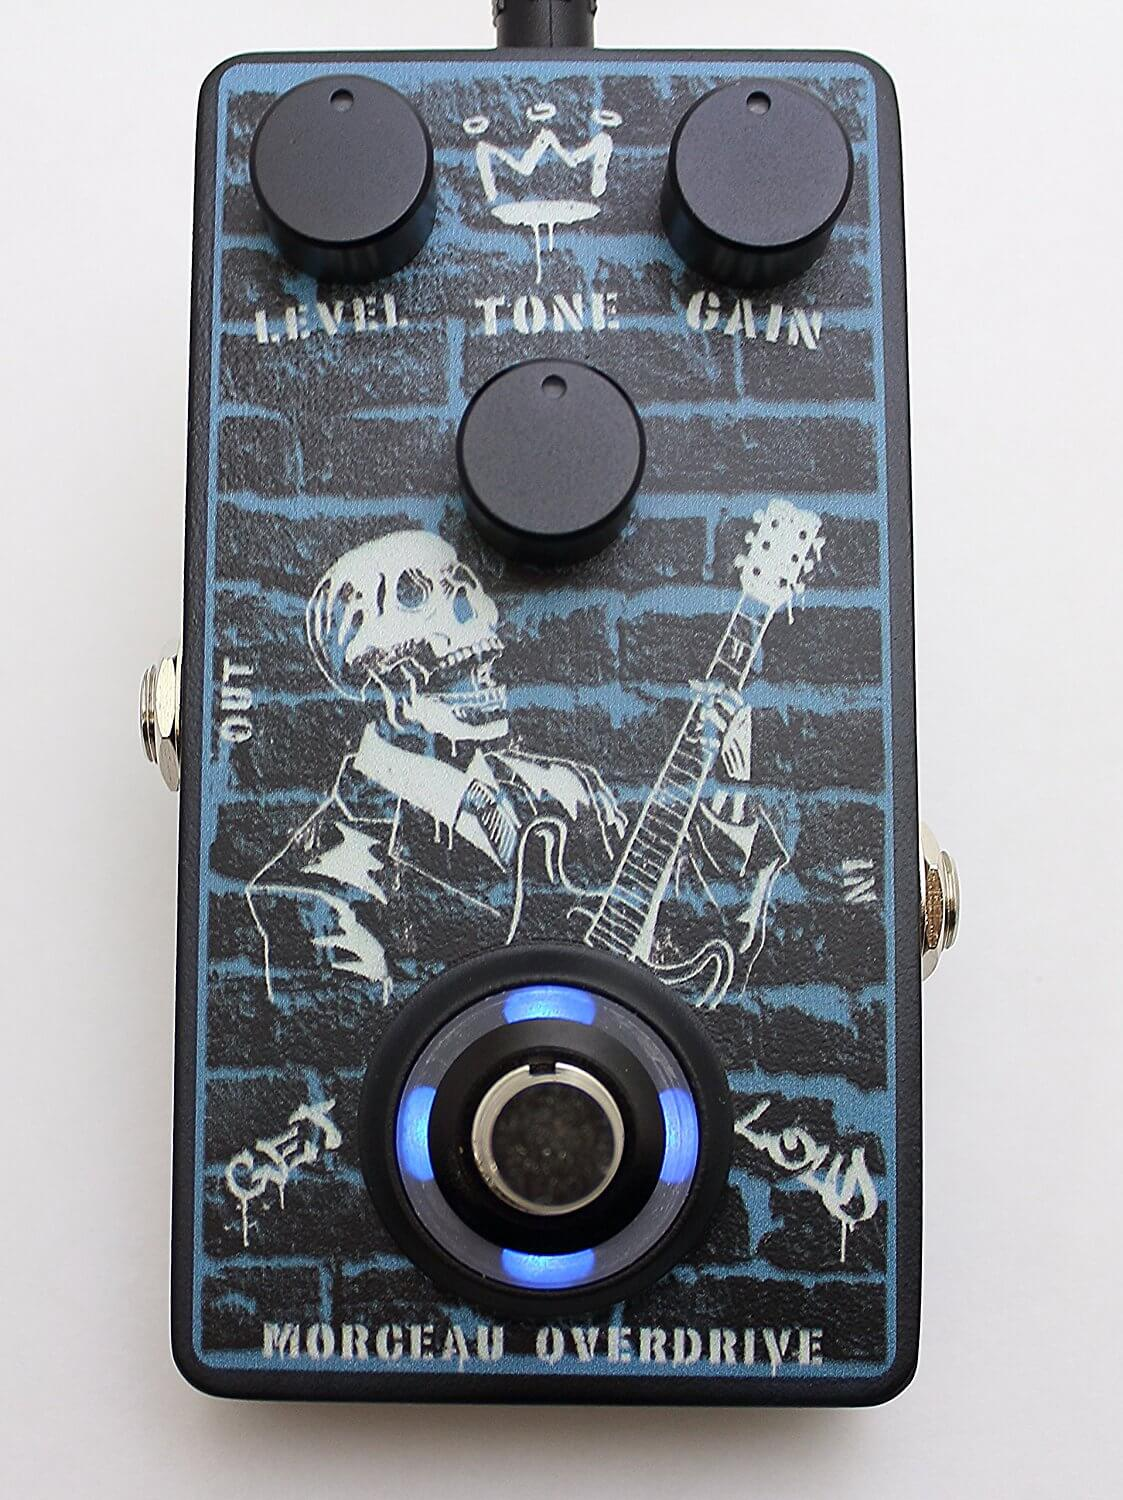 morceau m od 01 guitar overdrive effects pedal guitar pedals on the cheap. Black Bedroom Furniture Sets. Home Design Ideas